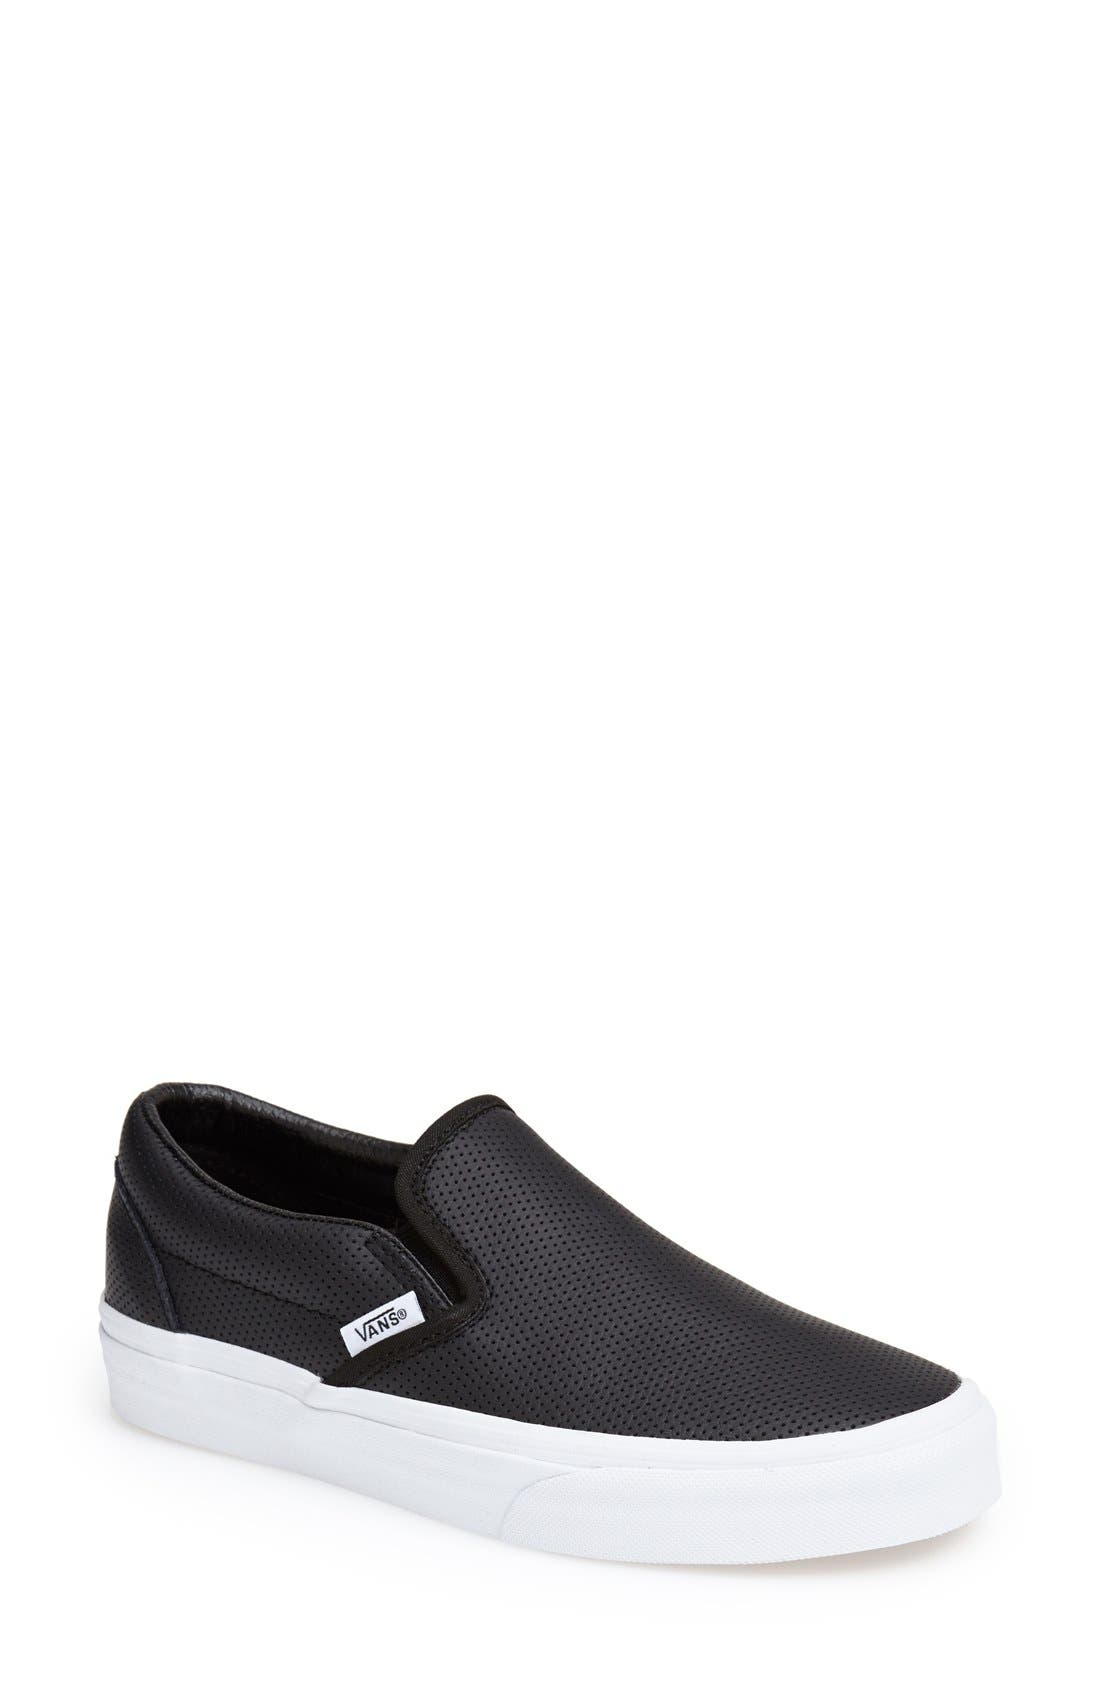 VANS, 'Classic' Sneaker, Main thumbnail 1, color, LEATHER BLACK